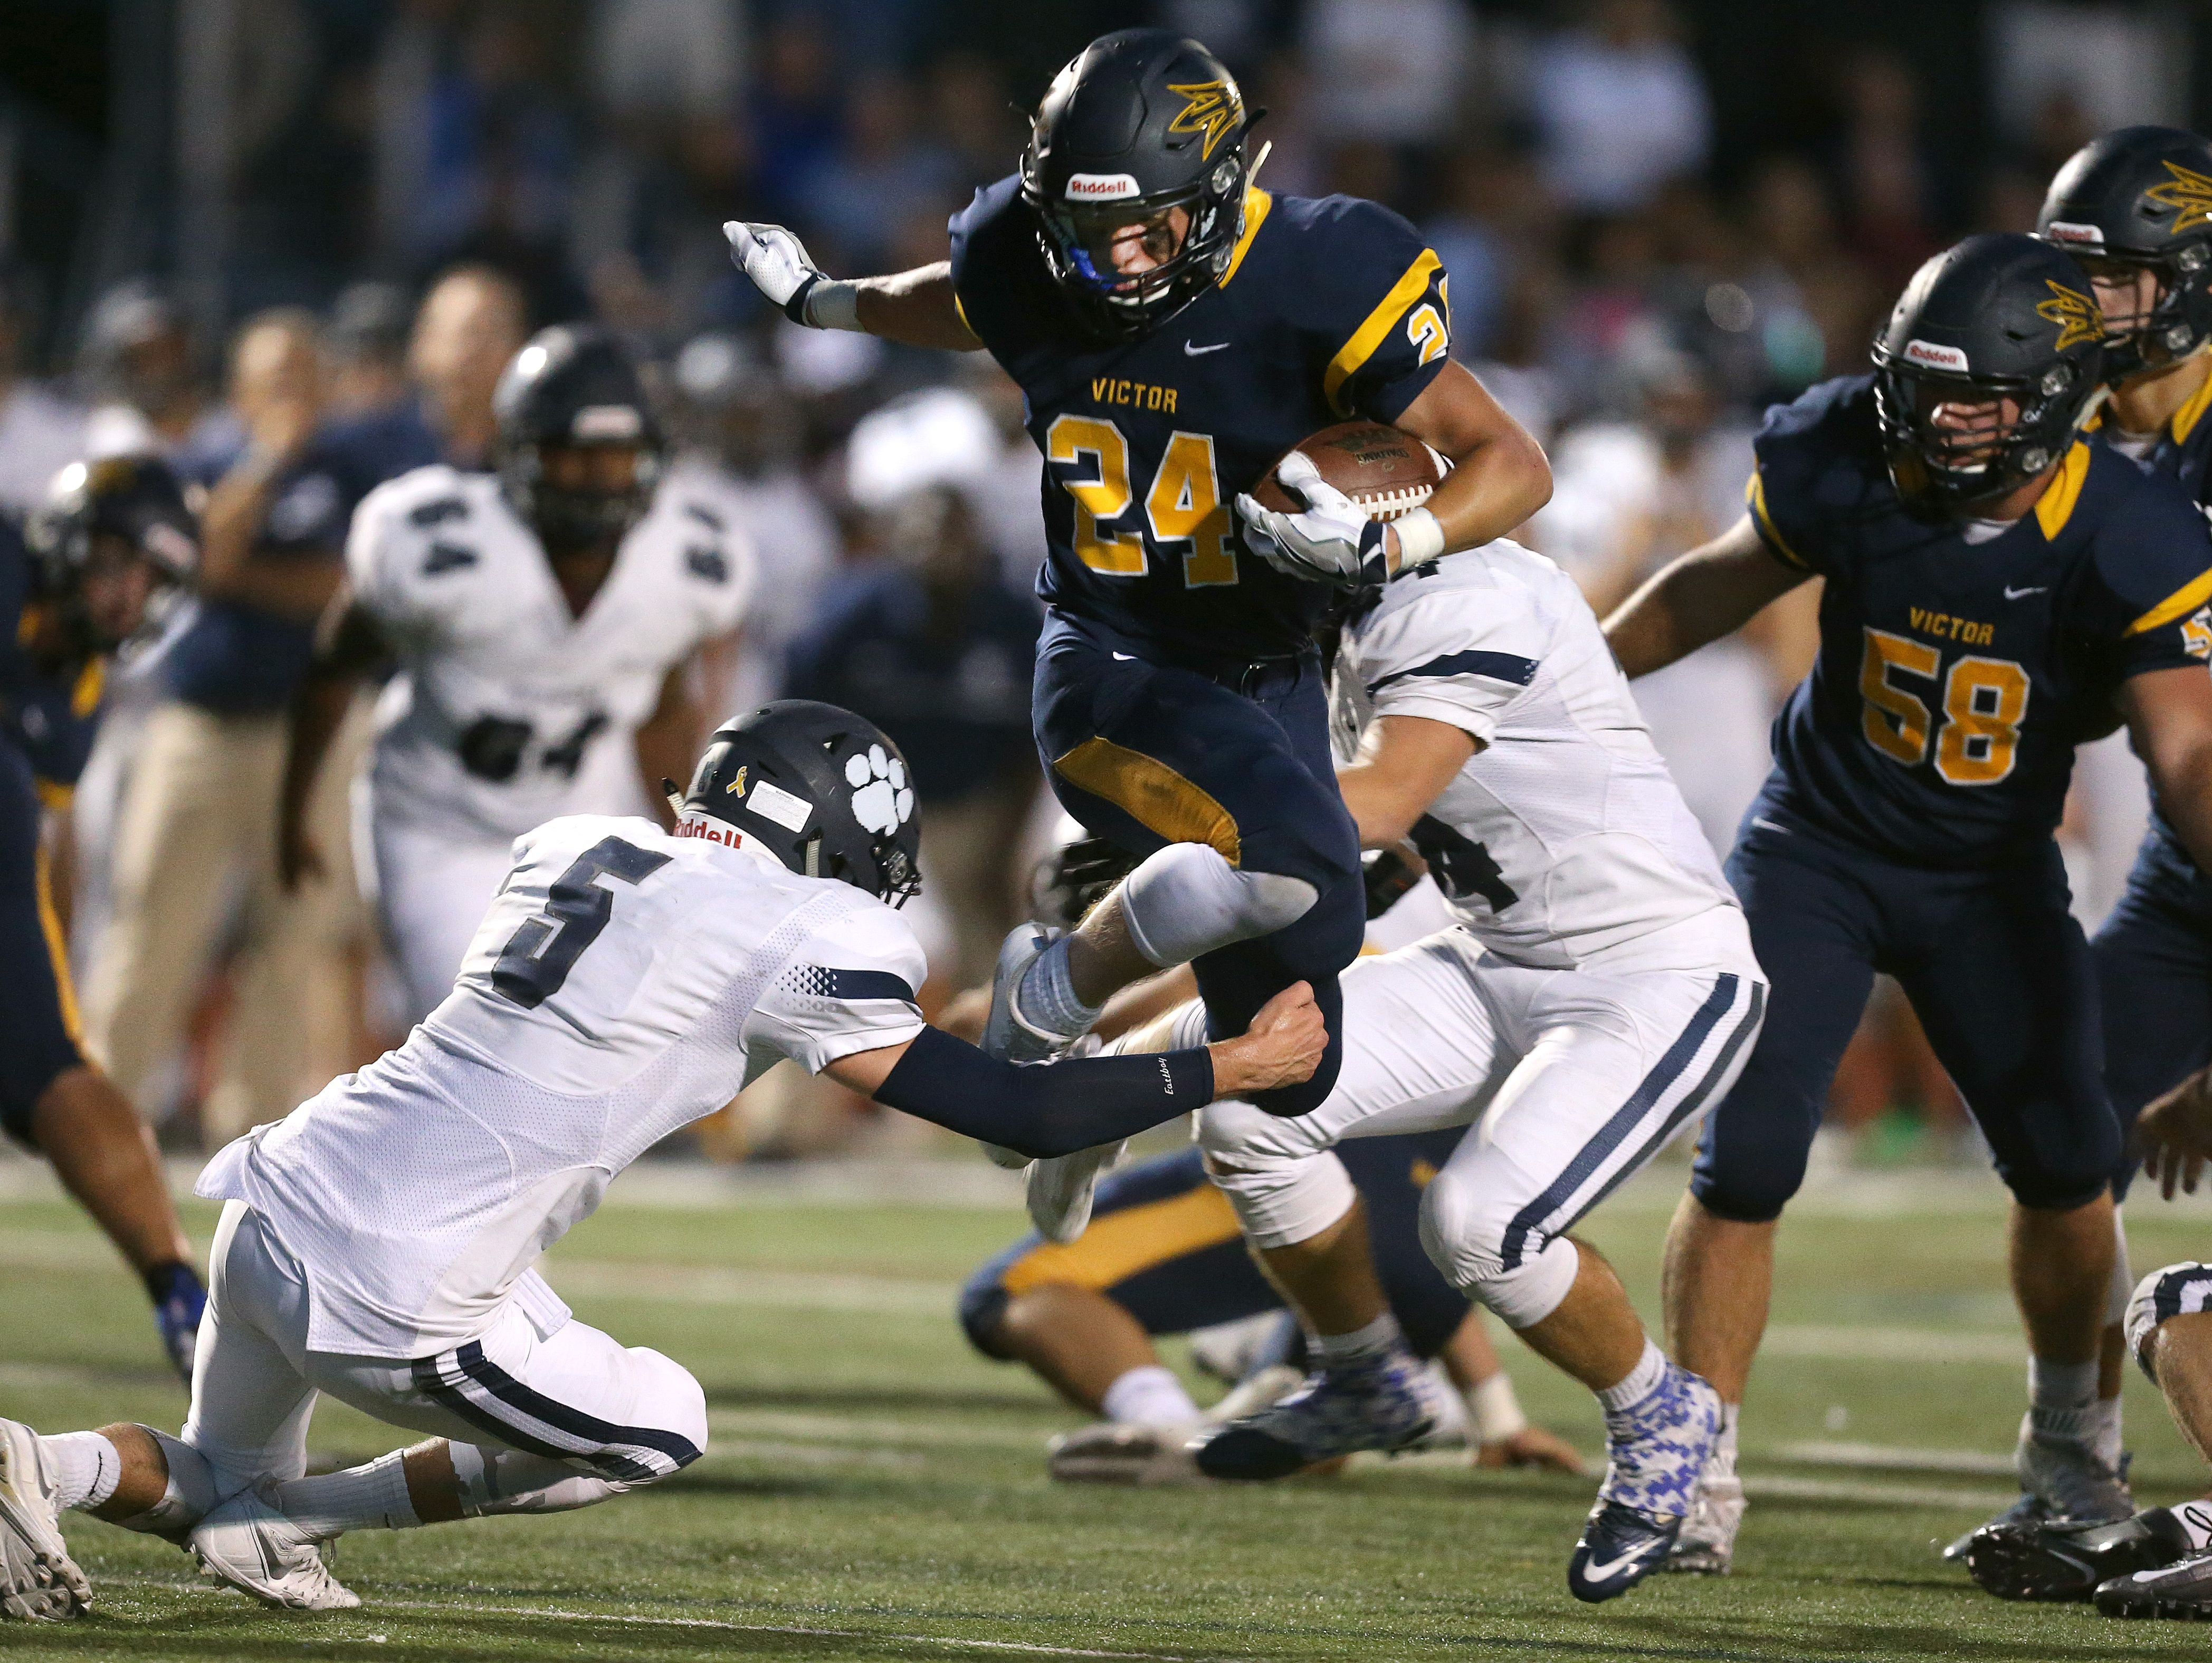 Victor running back Mitchell Spindler (24) leaps over Pittsford's Frankie Imburgia (5) in Week 3. Next for the Blue Devils is Fairport, another undefeated opponent Victor faces at home.